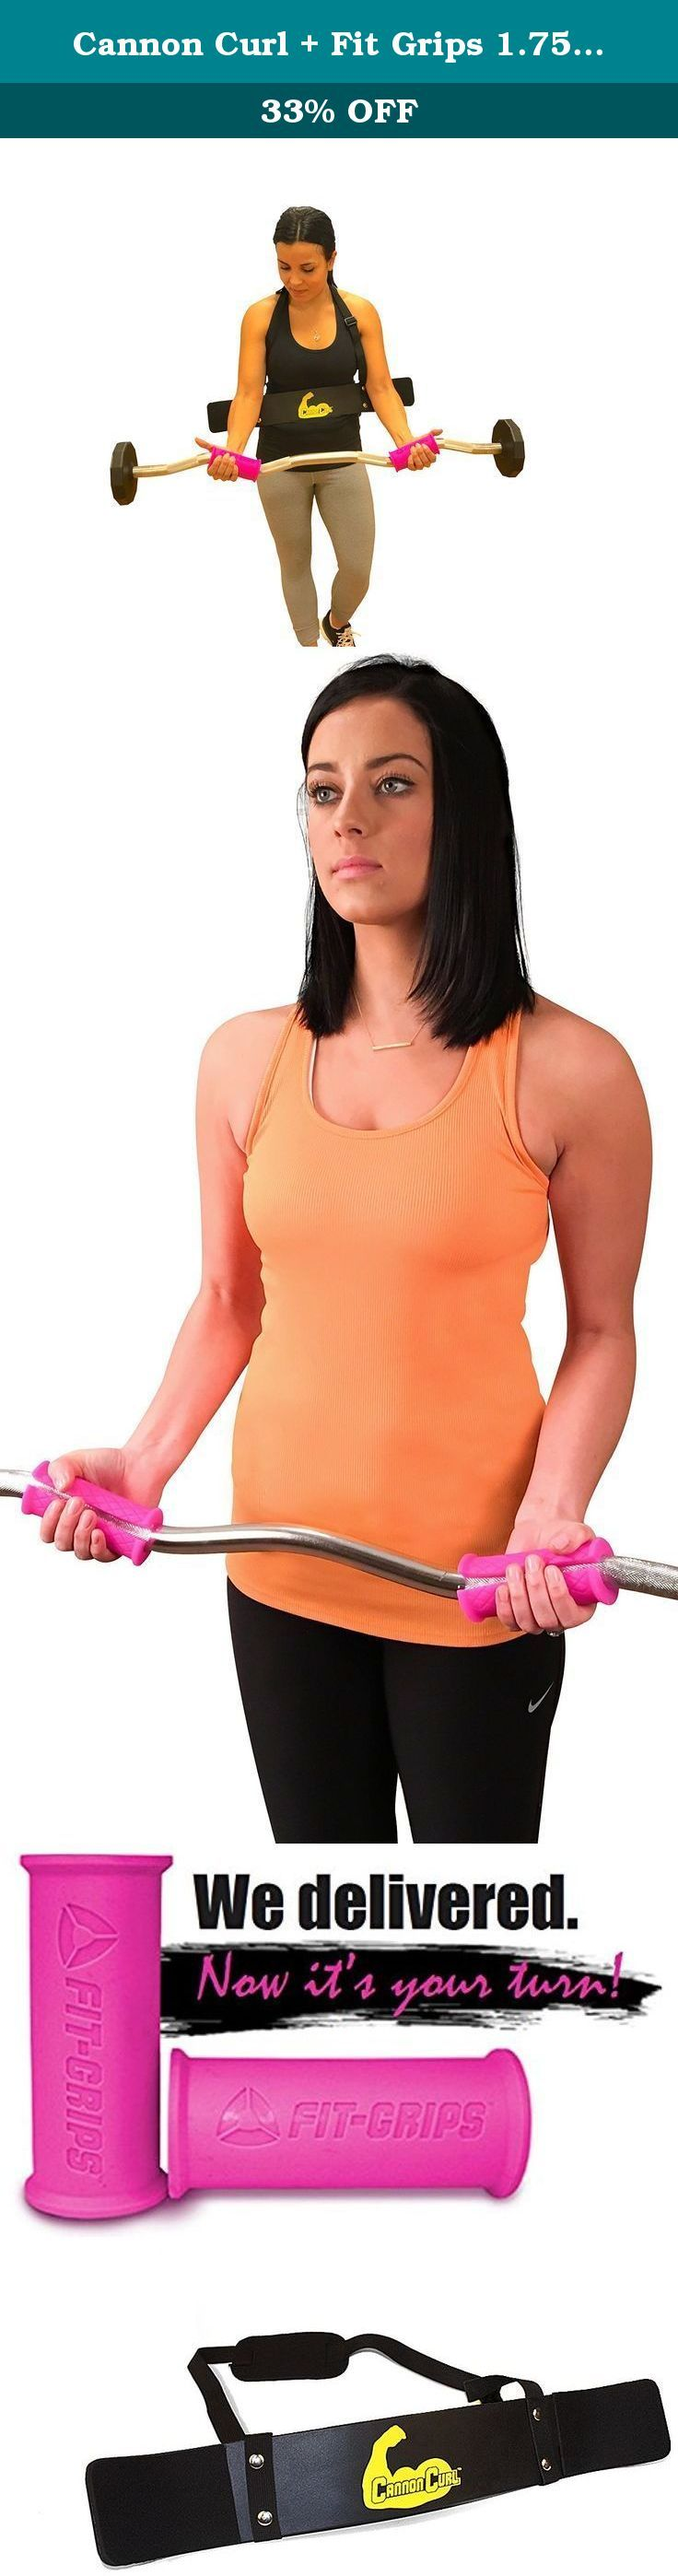 Cannon Curl + Fit Grips 1.75 - Arm Blaster Support Plus Thick/Fat Bar Training. Cannon Curl + Fit Grips 1.75 - Arm Blaster Support Plus Thick/Fat Bar Training. You are strong woman and getting stronger everyday. There is nobody that is going to bring you down. Combining Fit Grips and the Cannon Curl by Core Prodigy will transform your grip and arms! By increasing the diameter of the bar with the Fit Grips 1.75, you will feel a much greater muscle activation in your hands and arms. This...